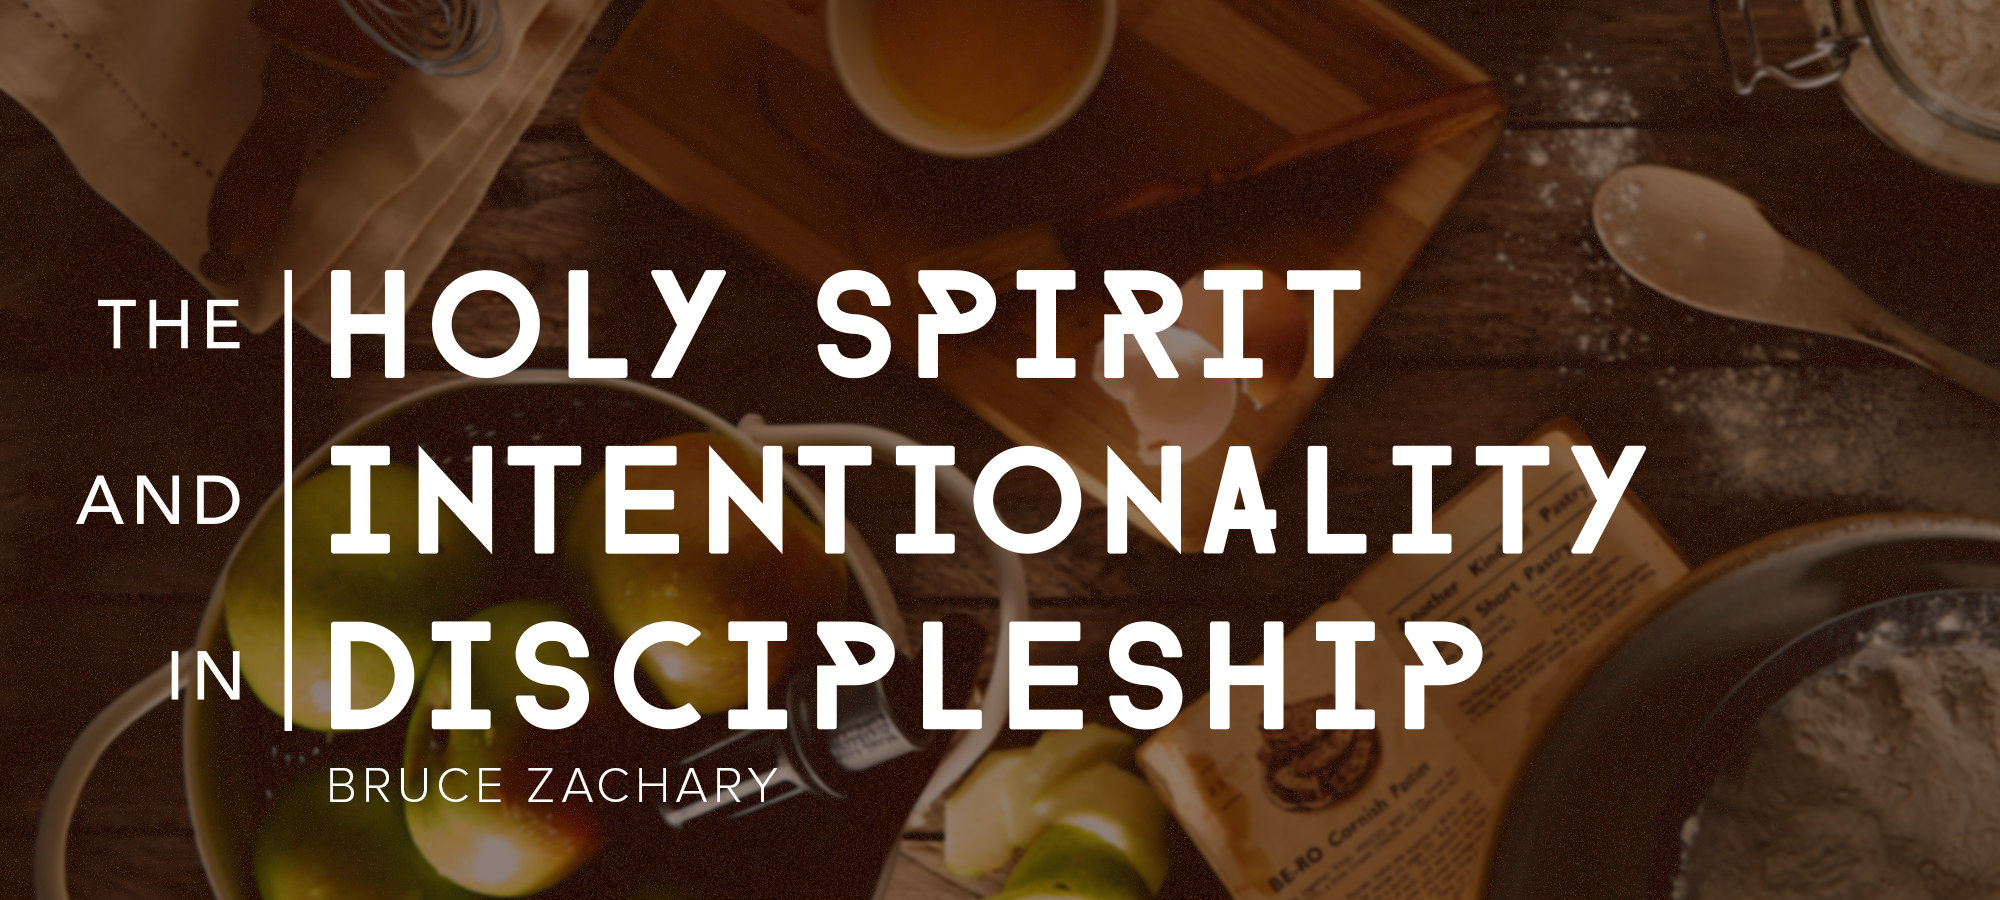 The Holy Spirit & Intentionality in Discipleship